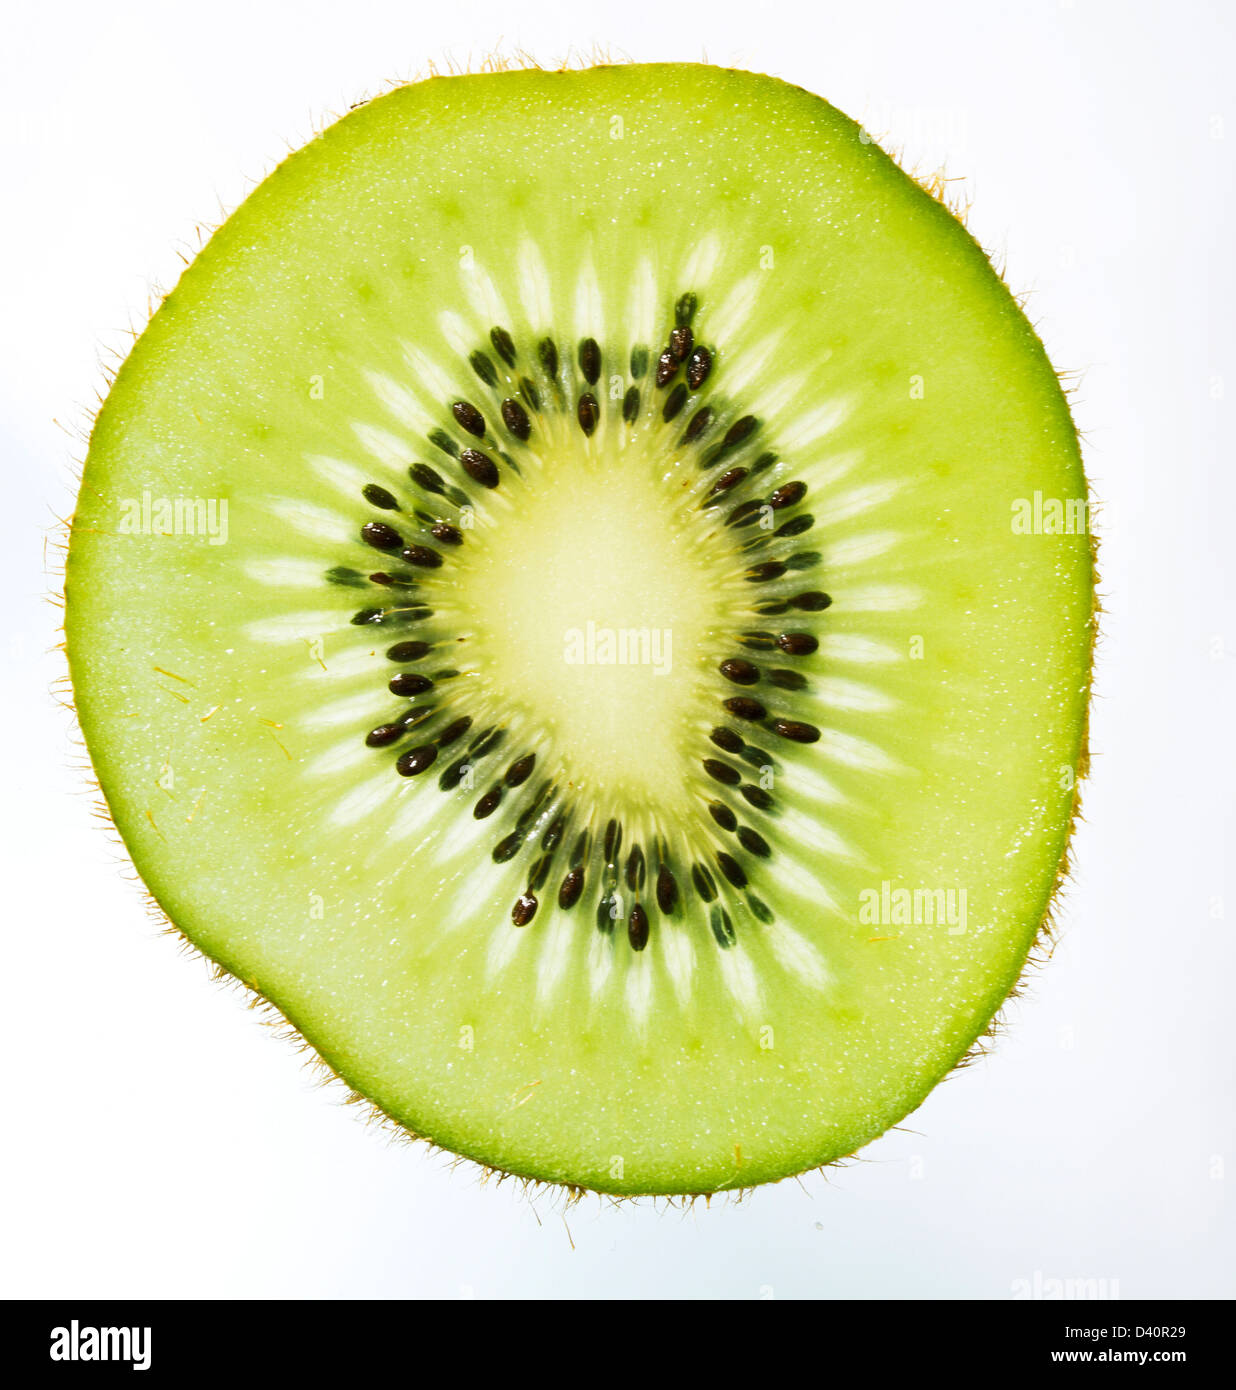 how to cut a kiwi in slices